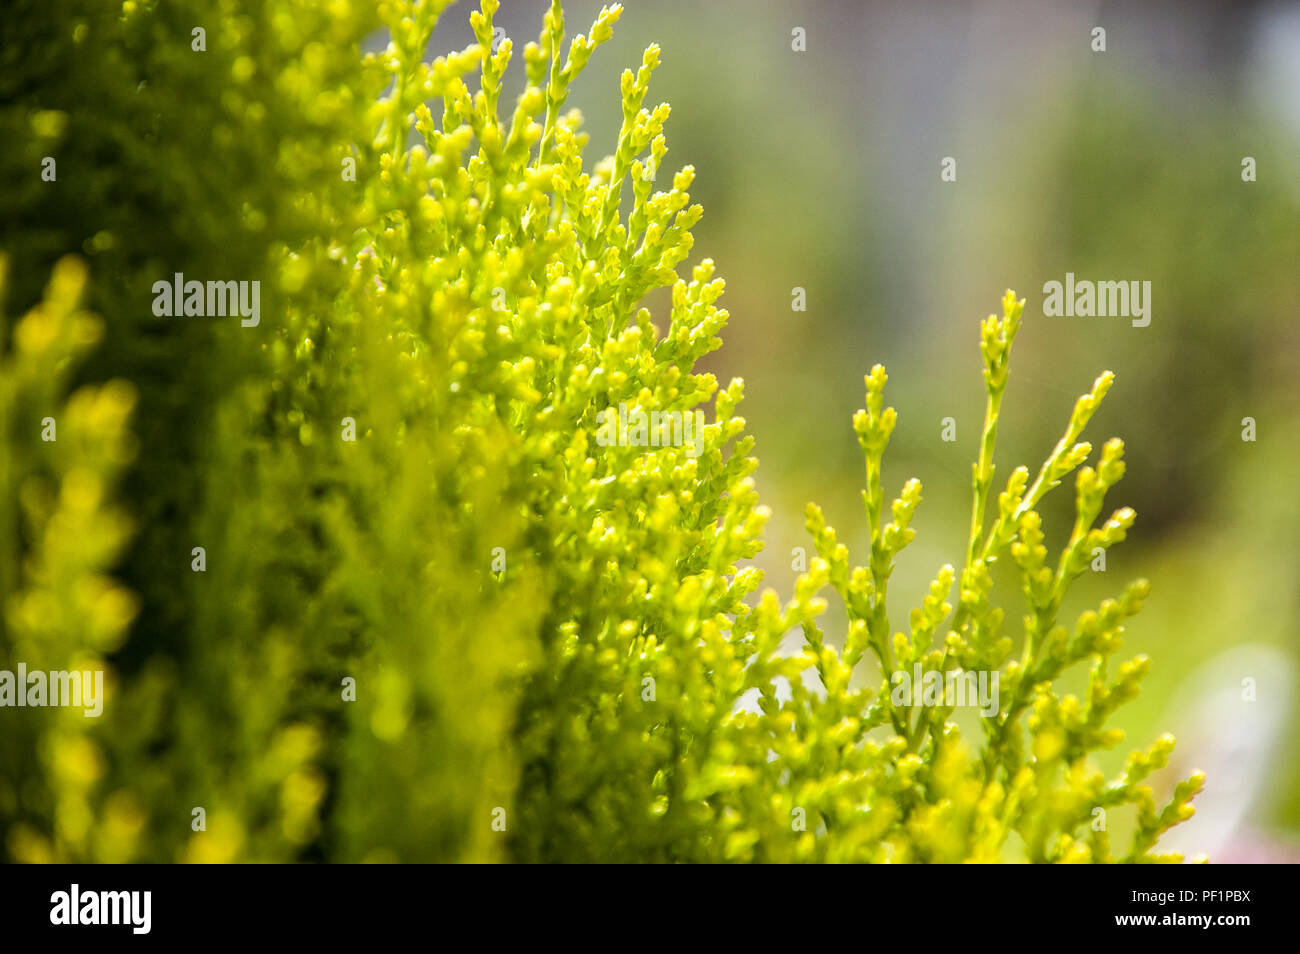 thuya evergreen garden bush Stock Photo